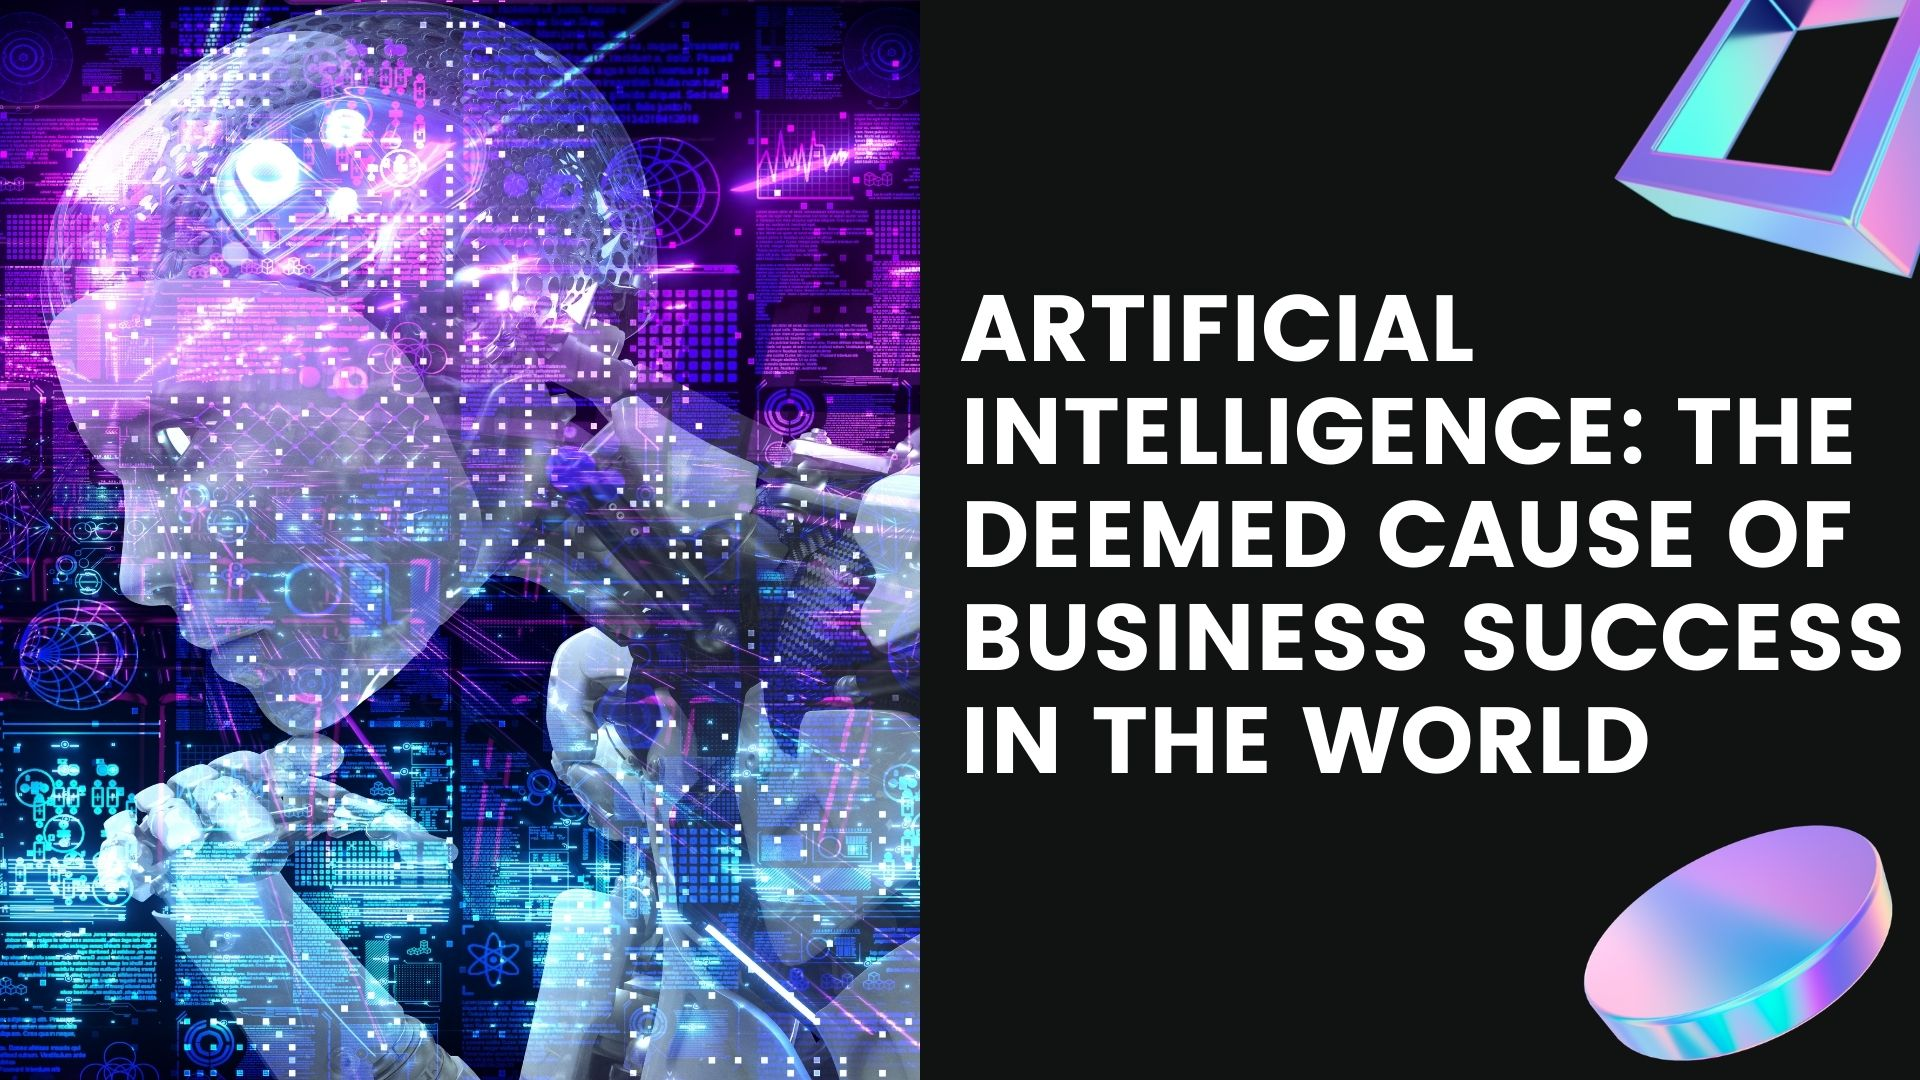 Artificial Intelligence: The Deemed Cause of Business Success in Entire World